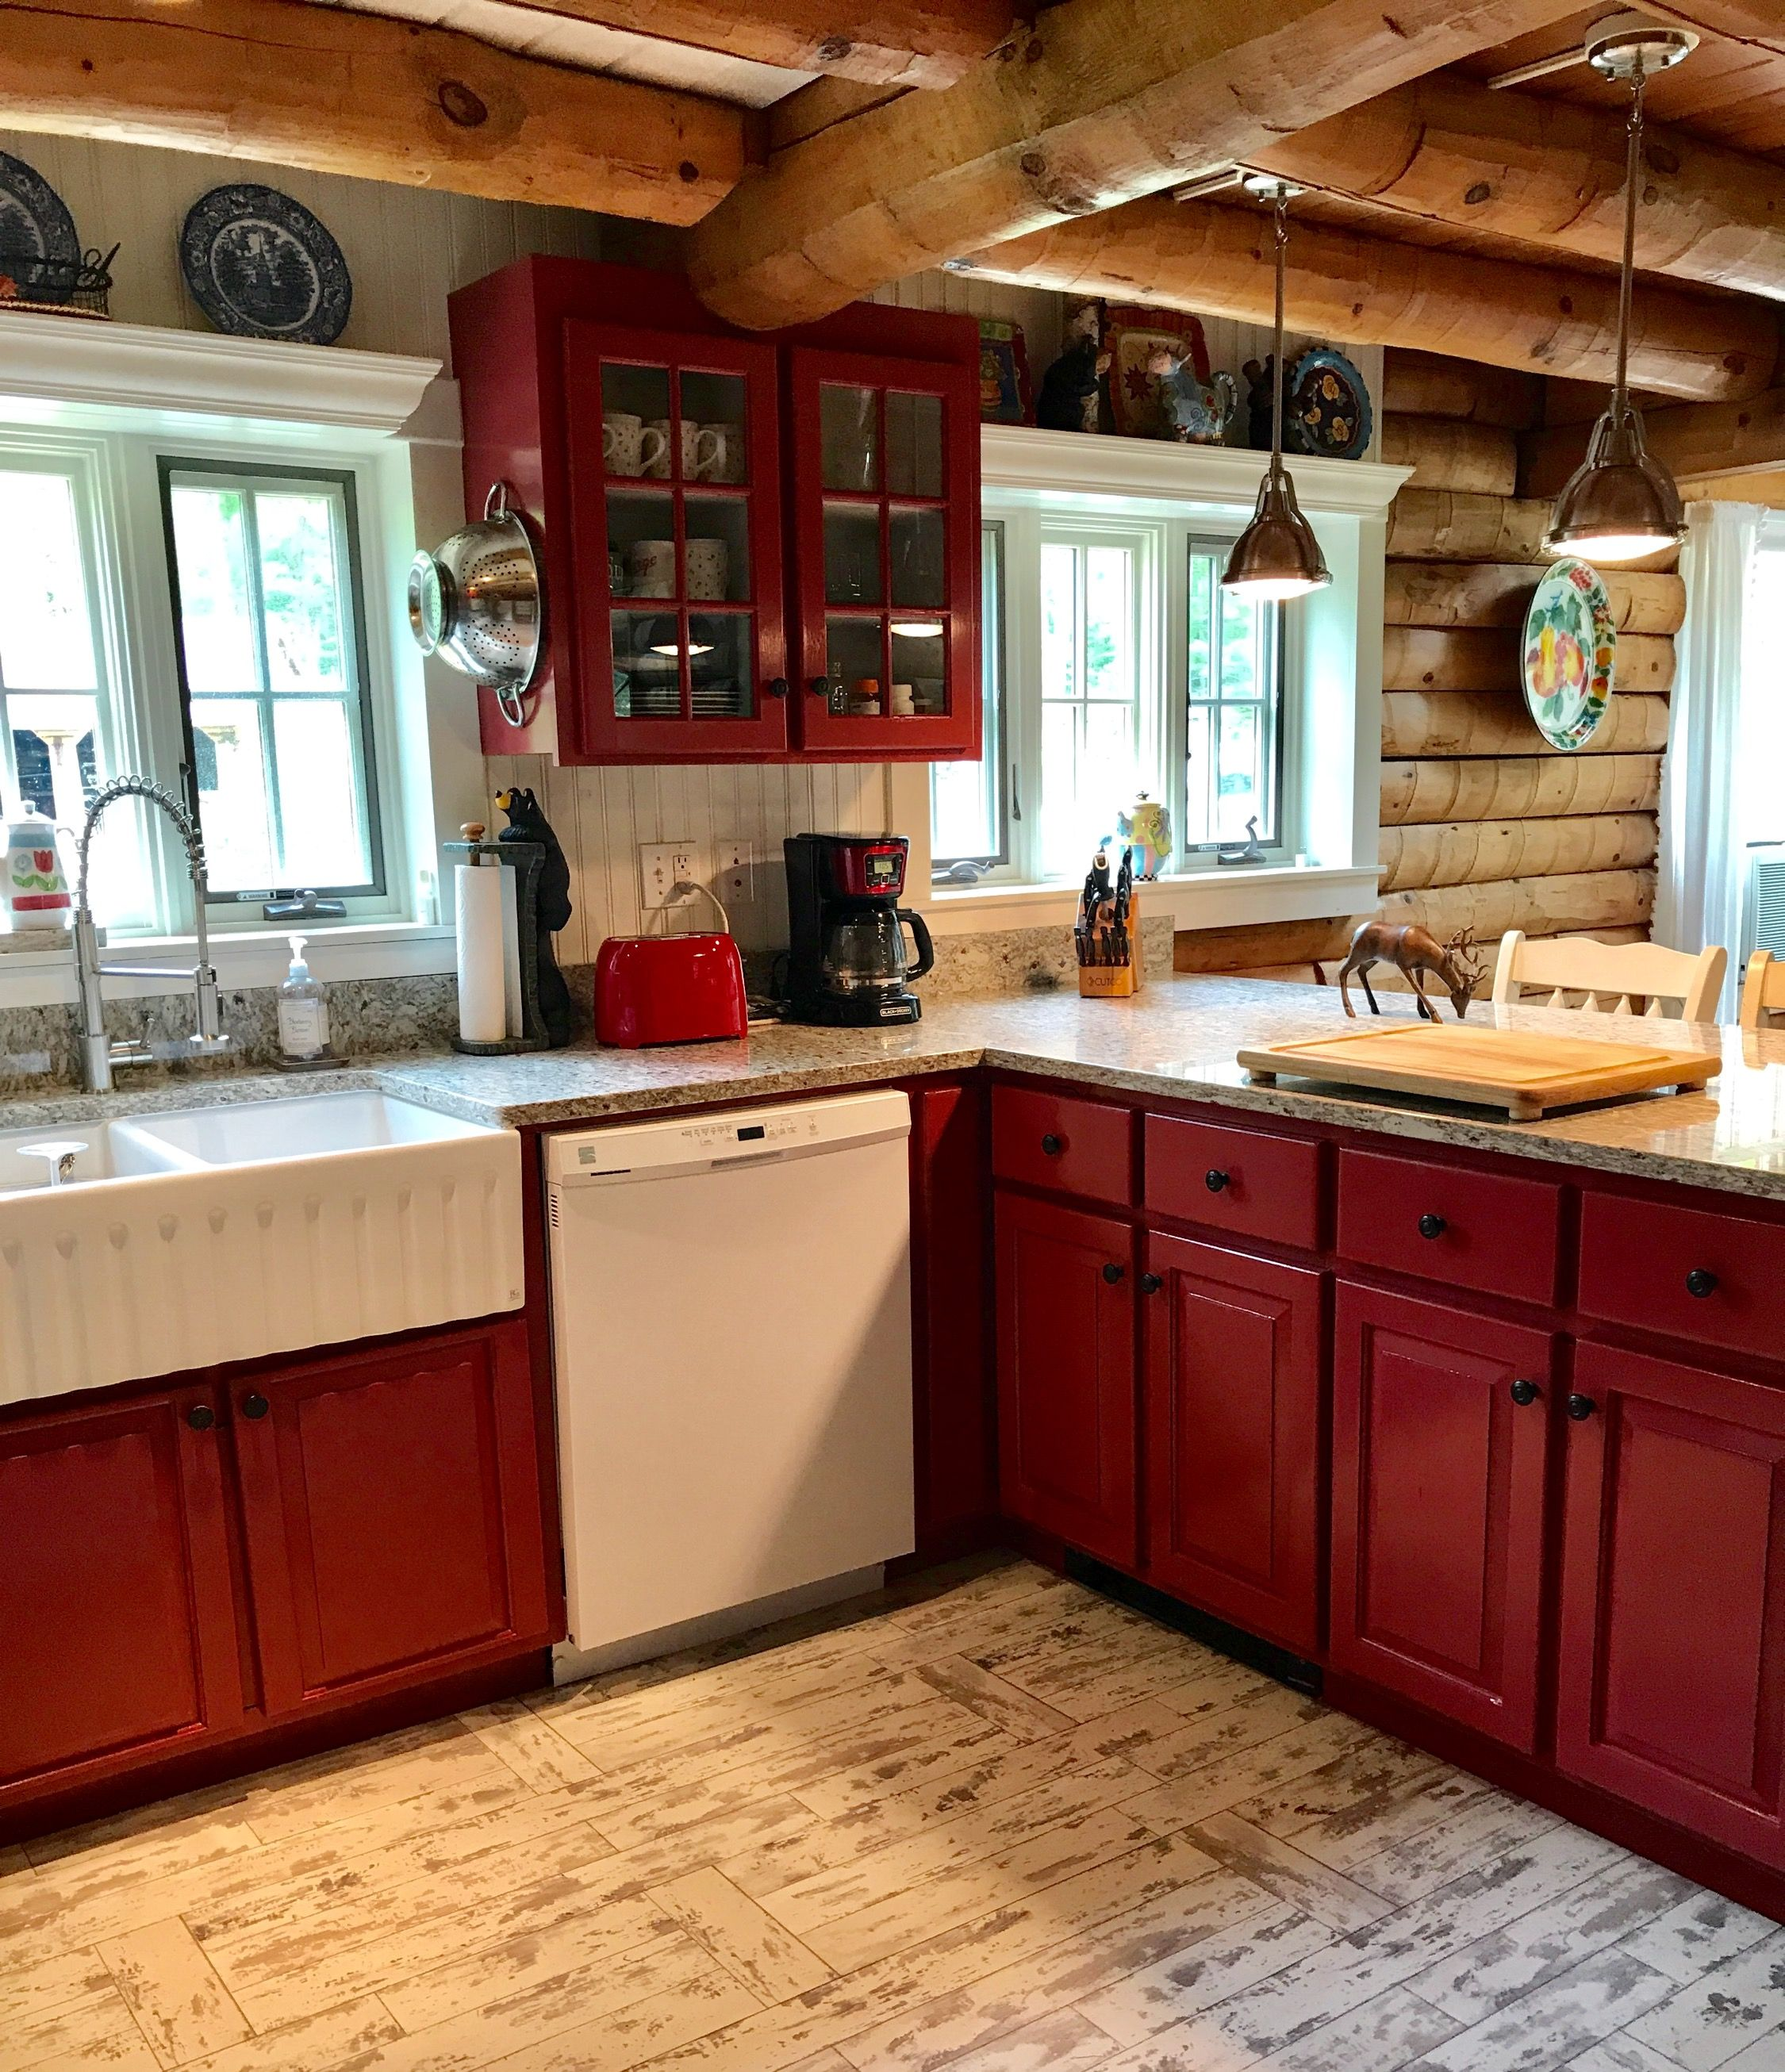 Log Cabin Kitchen With Red Painted Wood Cabinets So Charming